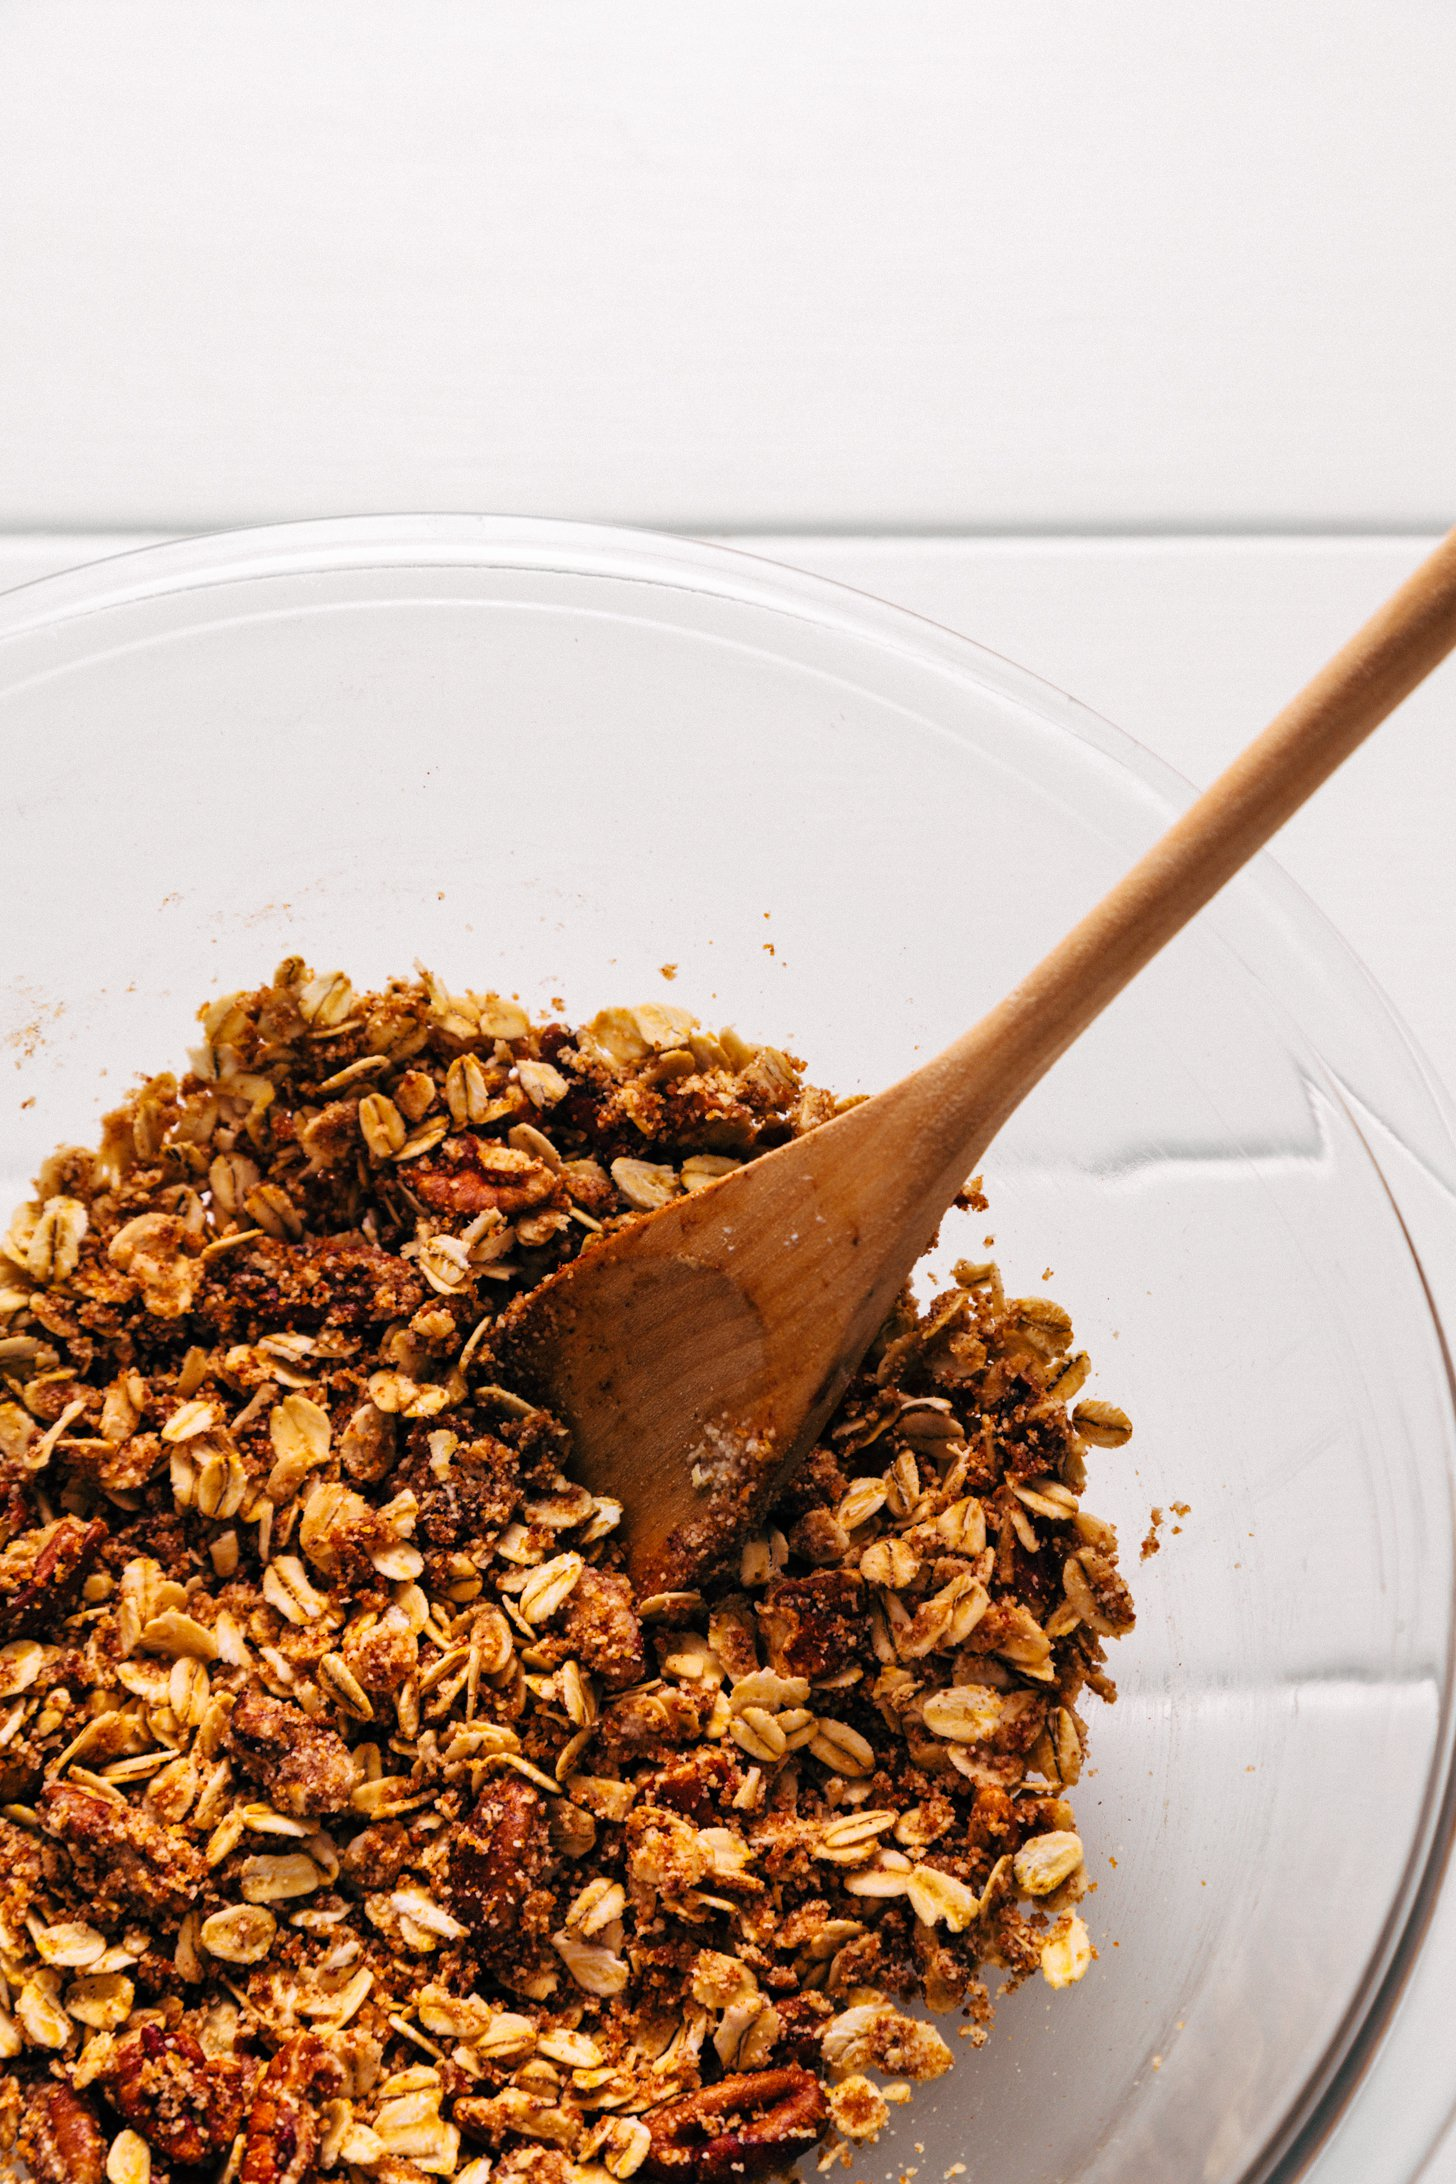 Using a wooden spoon to stir the Pecan-Oat Topping for our Healthified Apple Crisp recipe